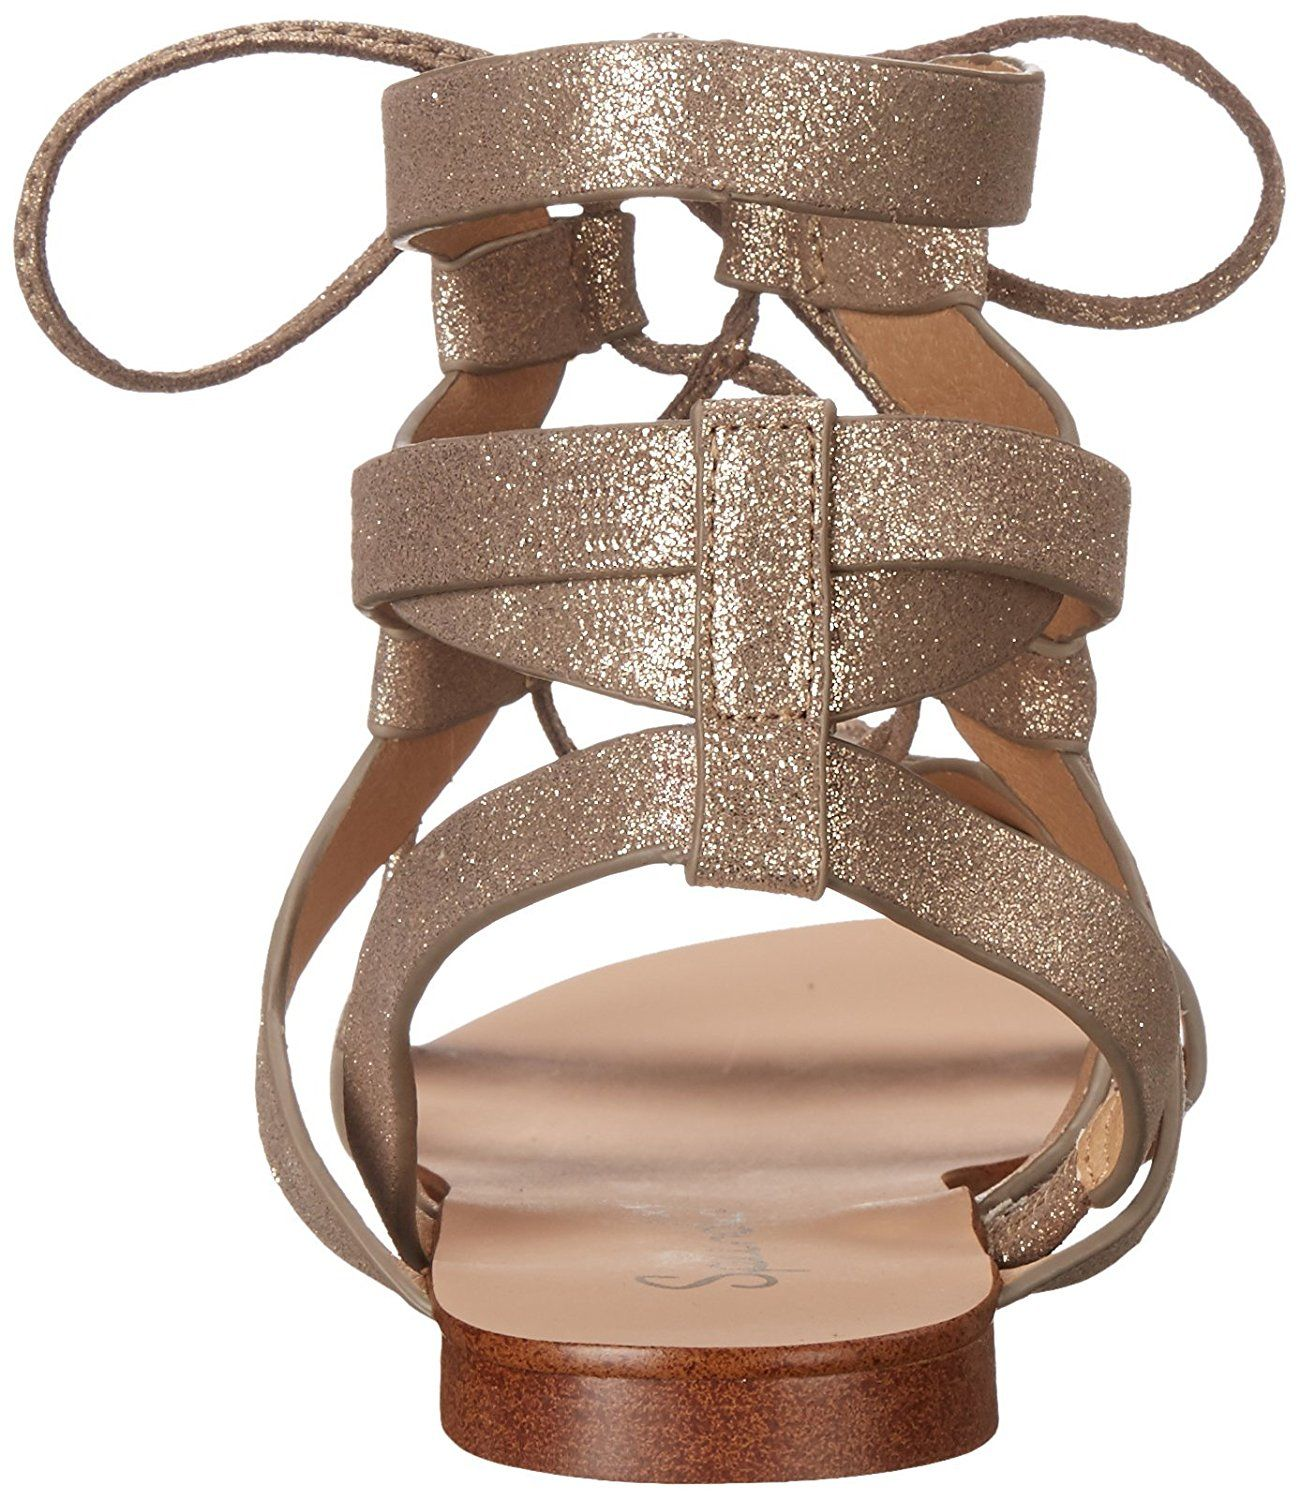 dfbf02cf0be5 Splendid Women s SPL-Cameron Gladiator Sandal    You can get additional  details at the image link. (This is an affiliate link)  shoestrend